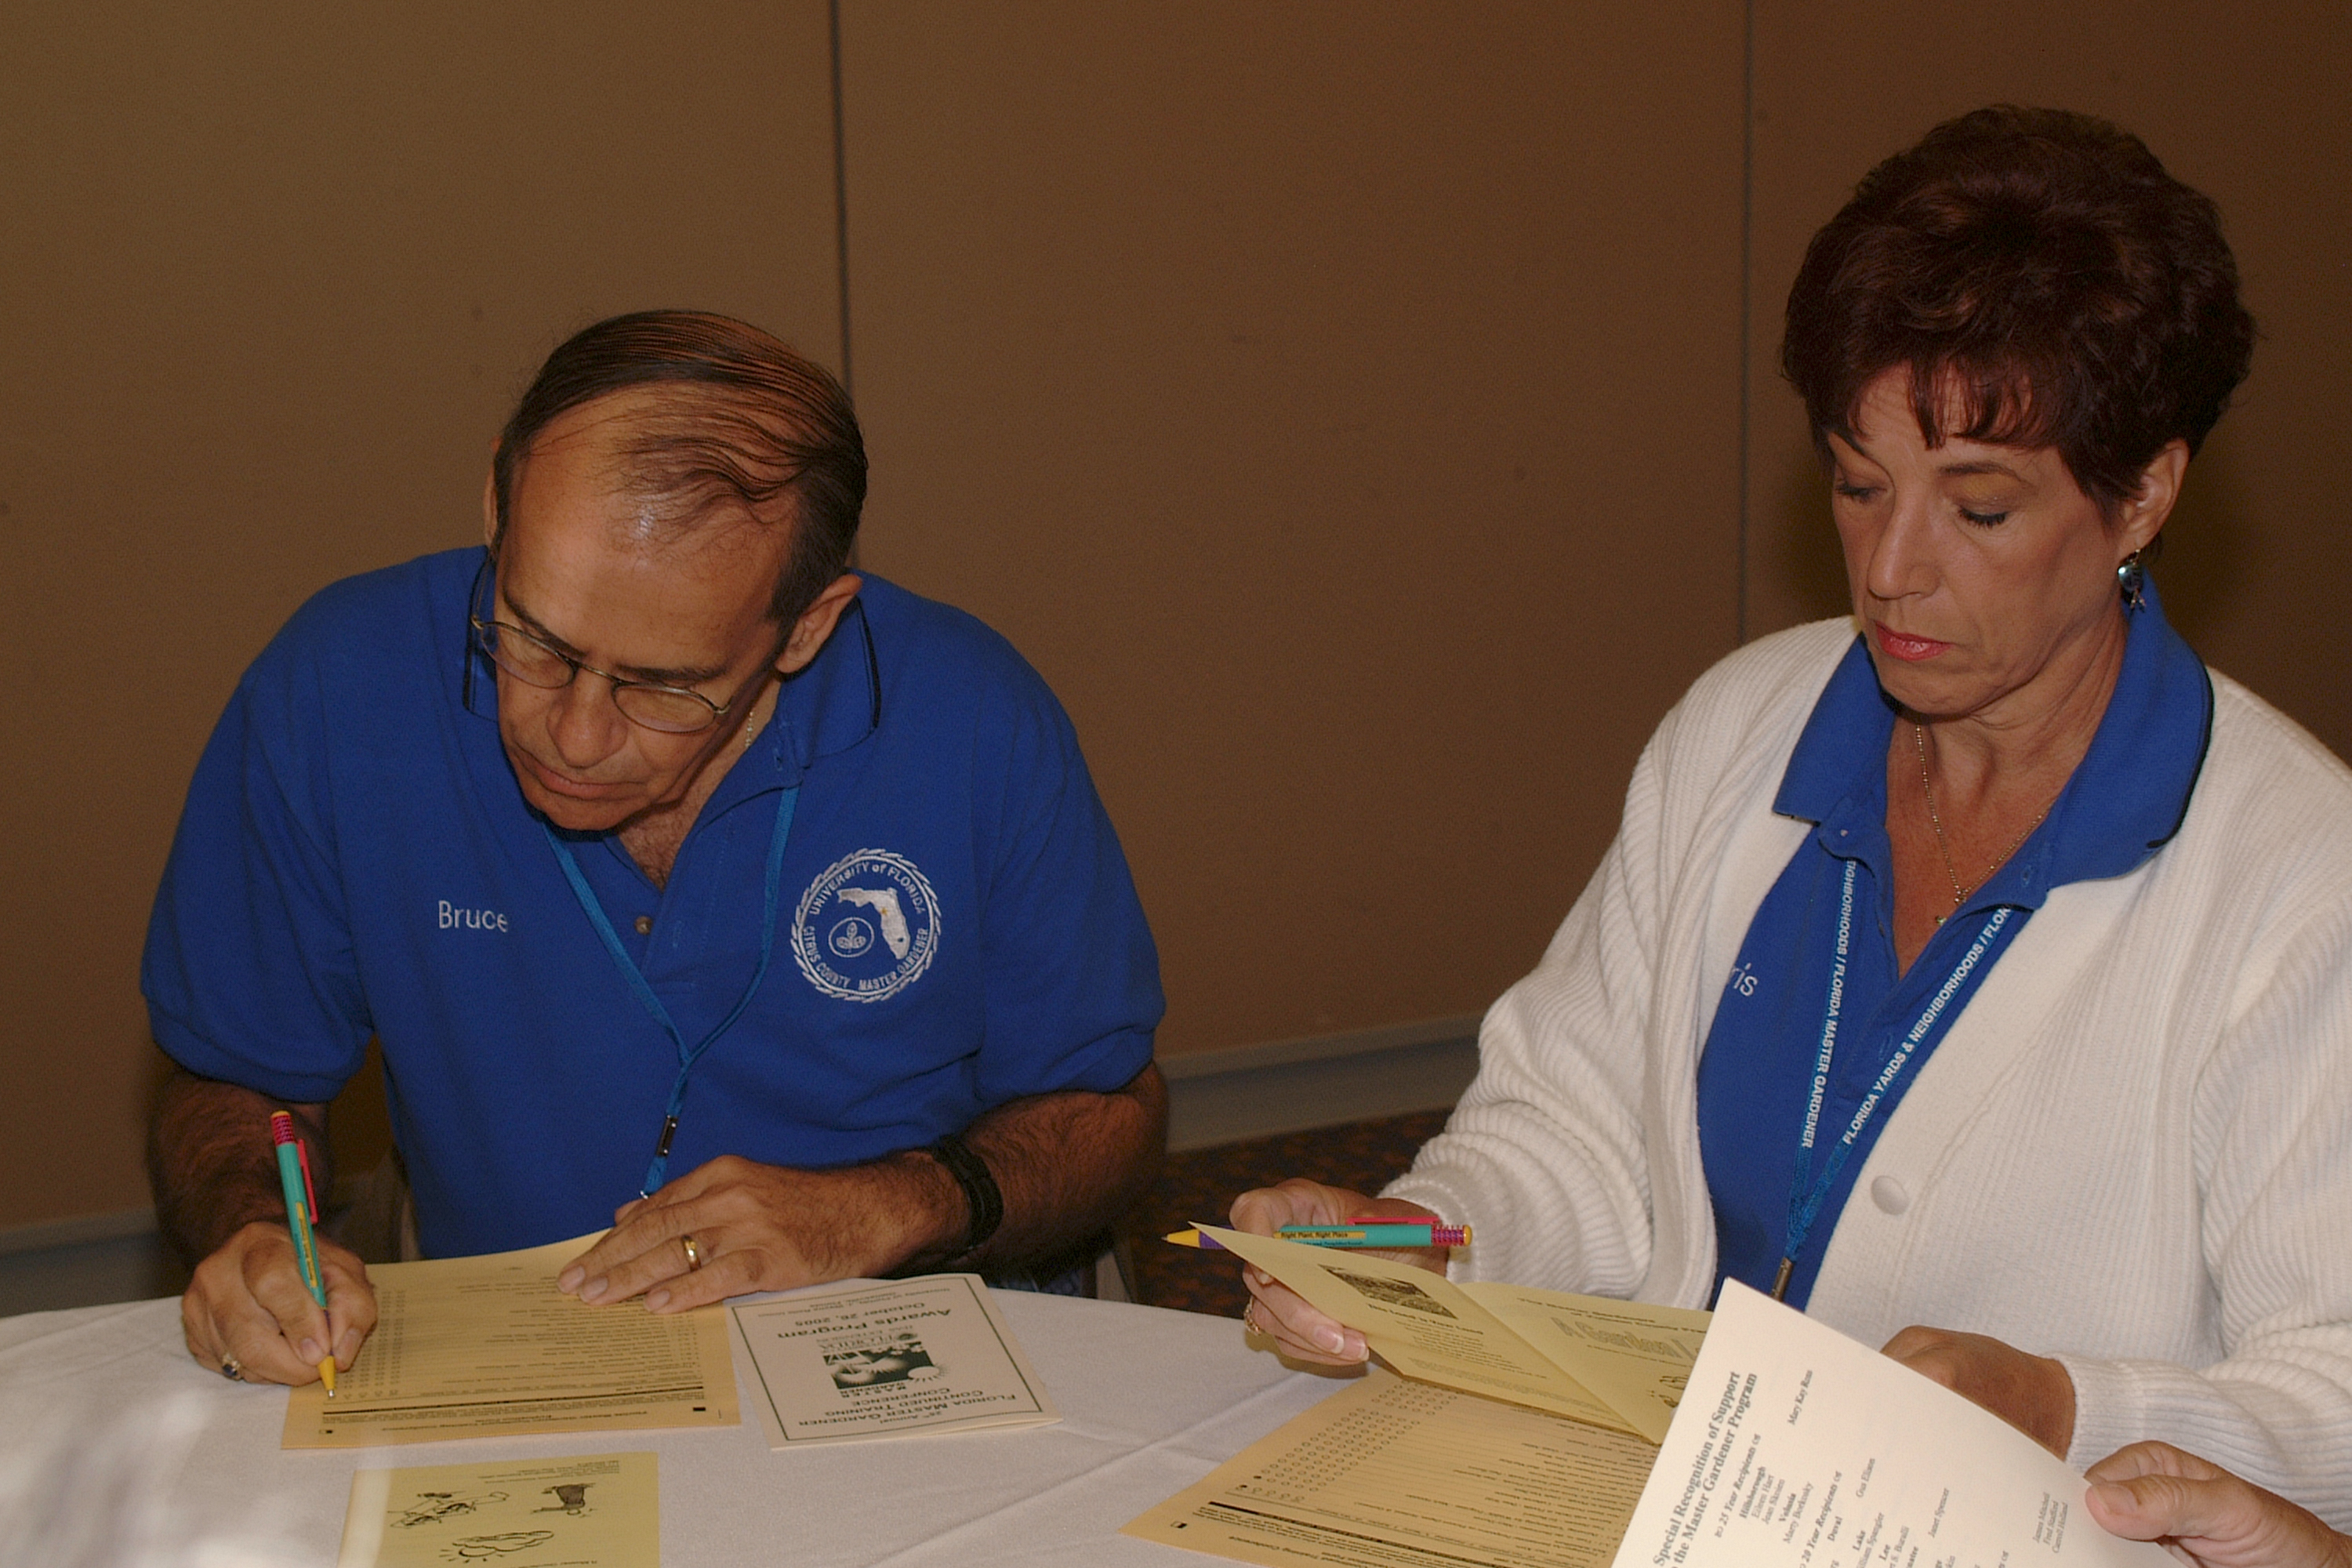 2005 Continued Training Conference Photos - Master Gardener Program ...